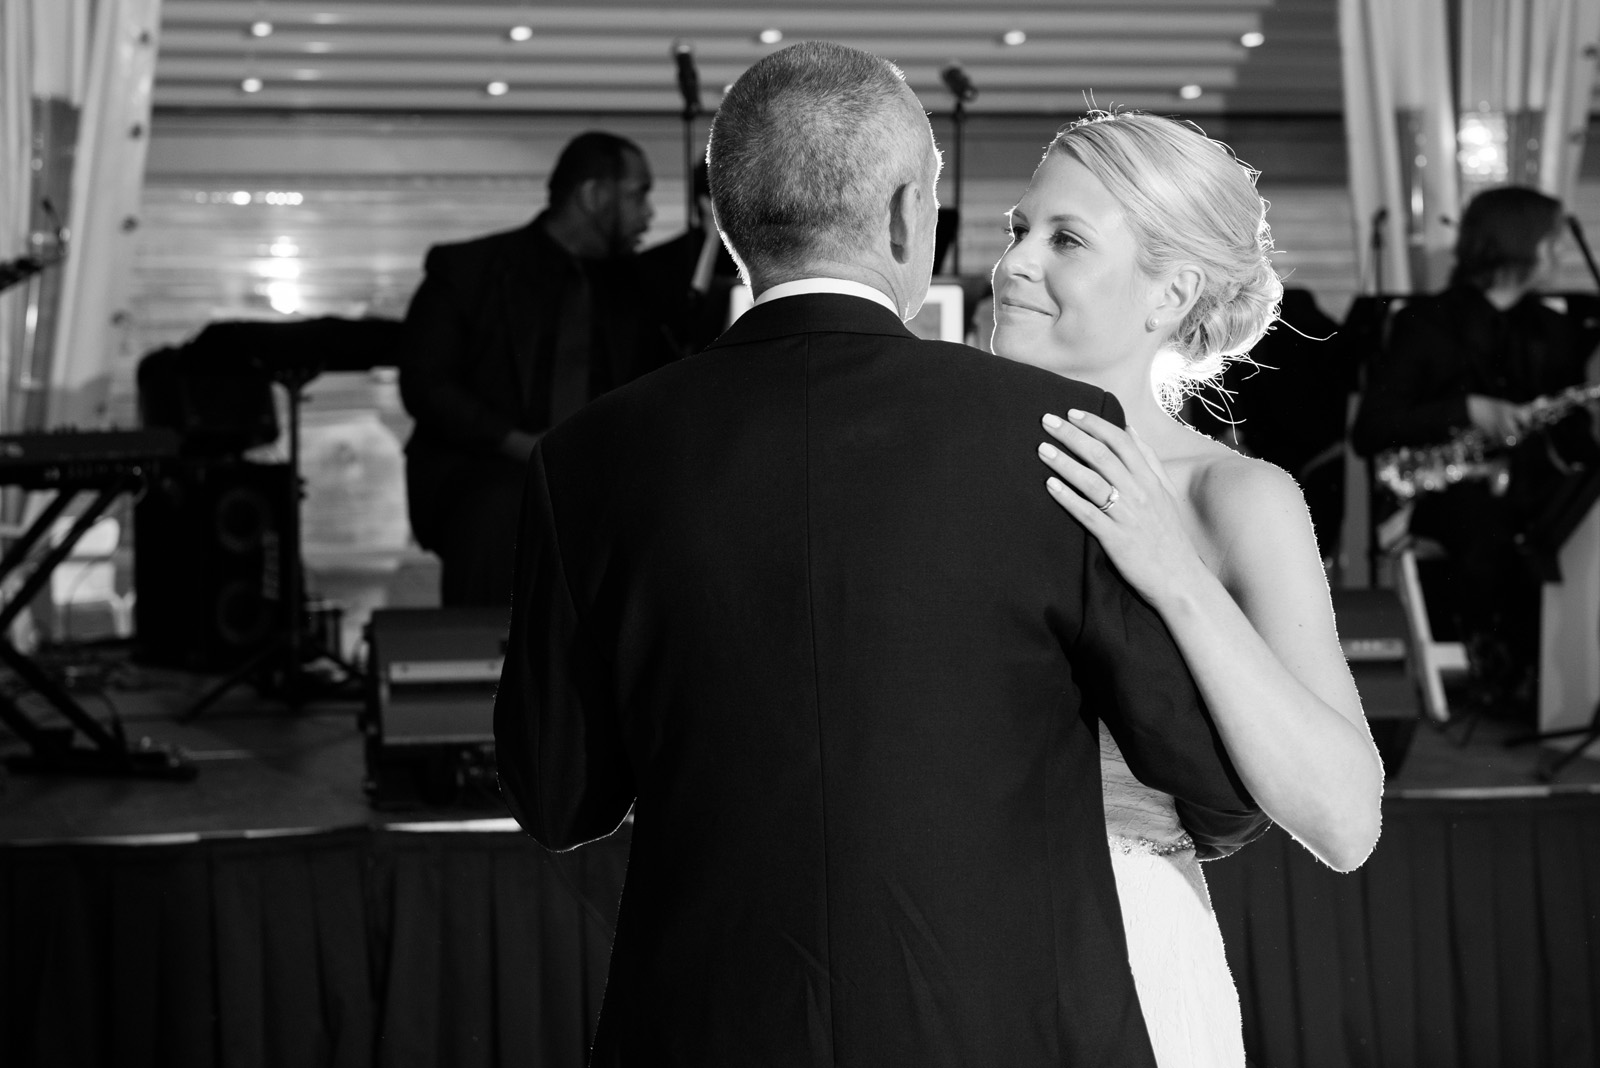 Touching Black and White photo of Bride dancing with her father